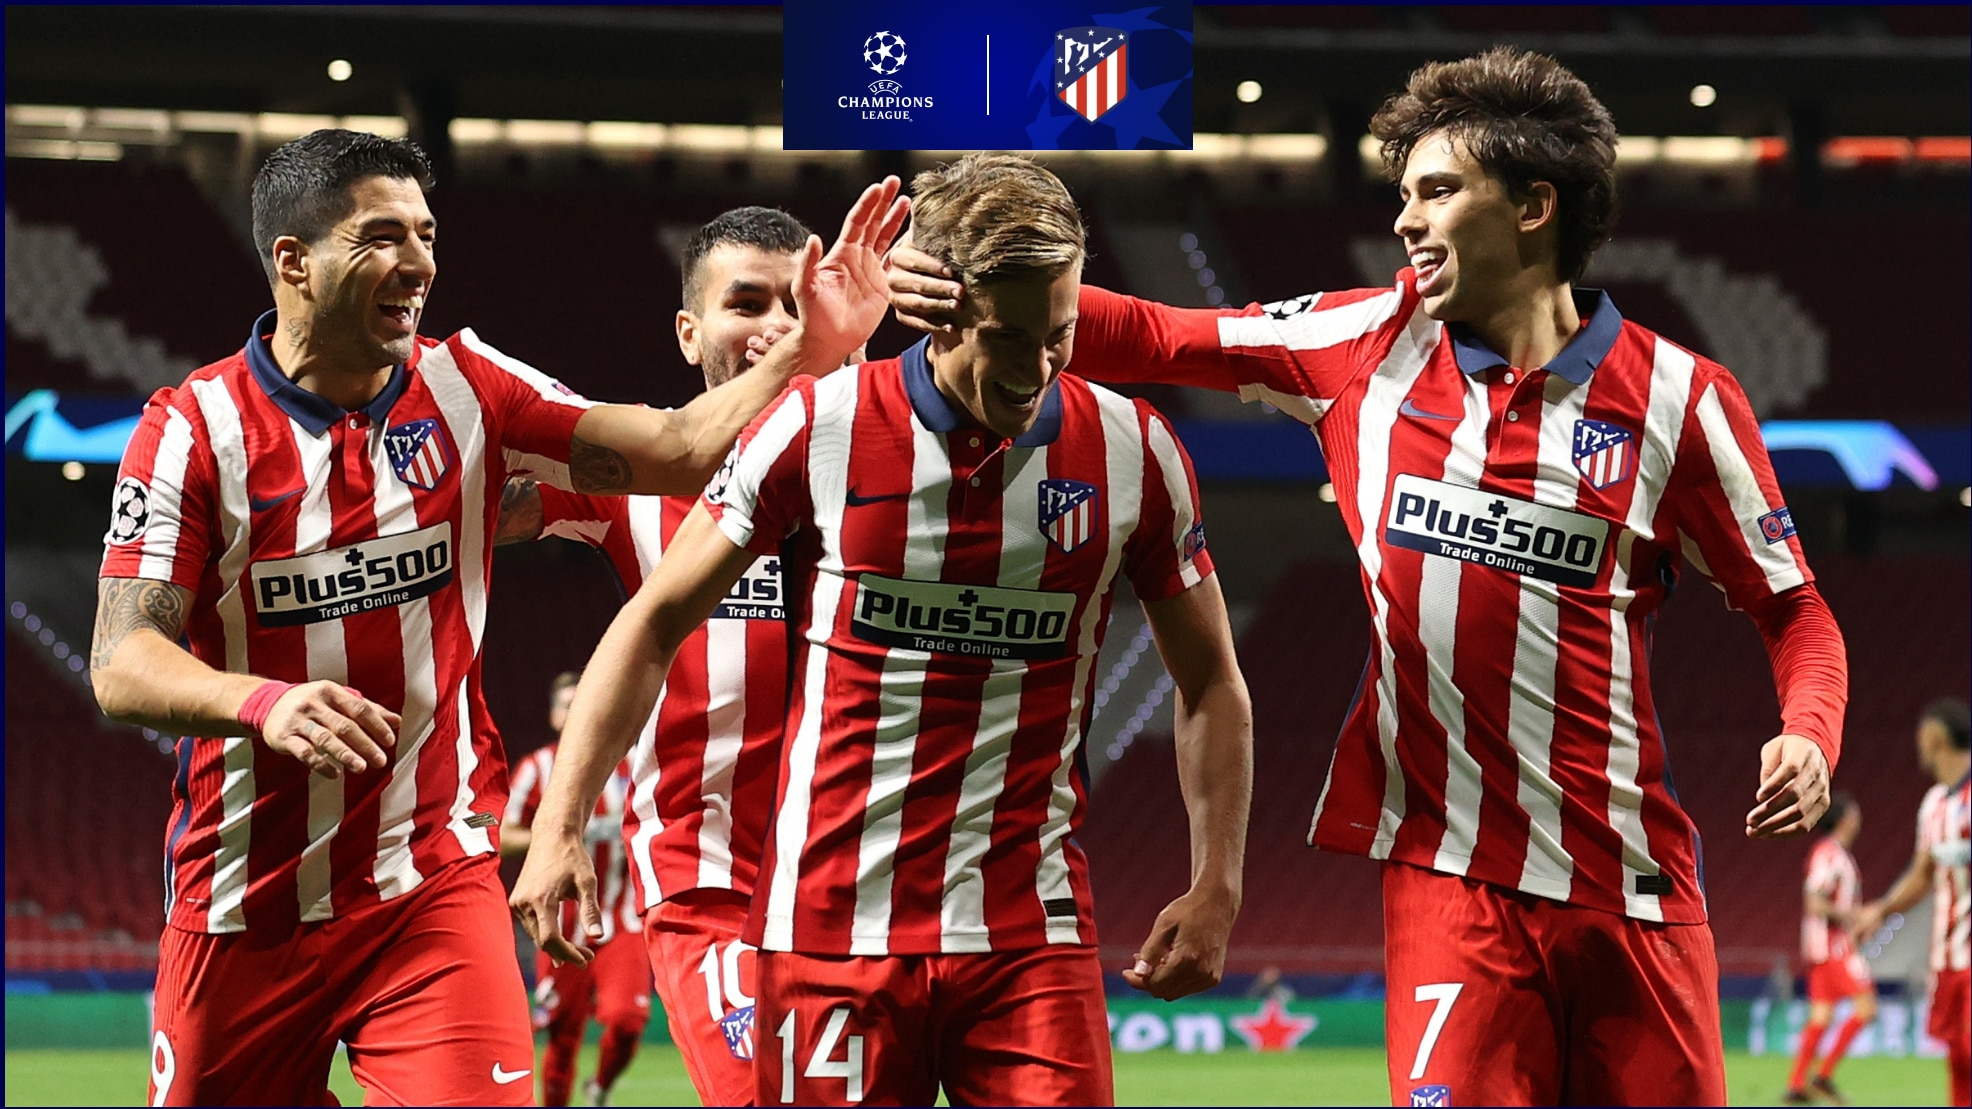 Summary: Atlético shows its courage